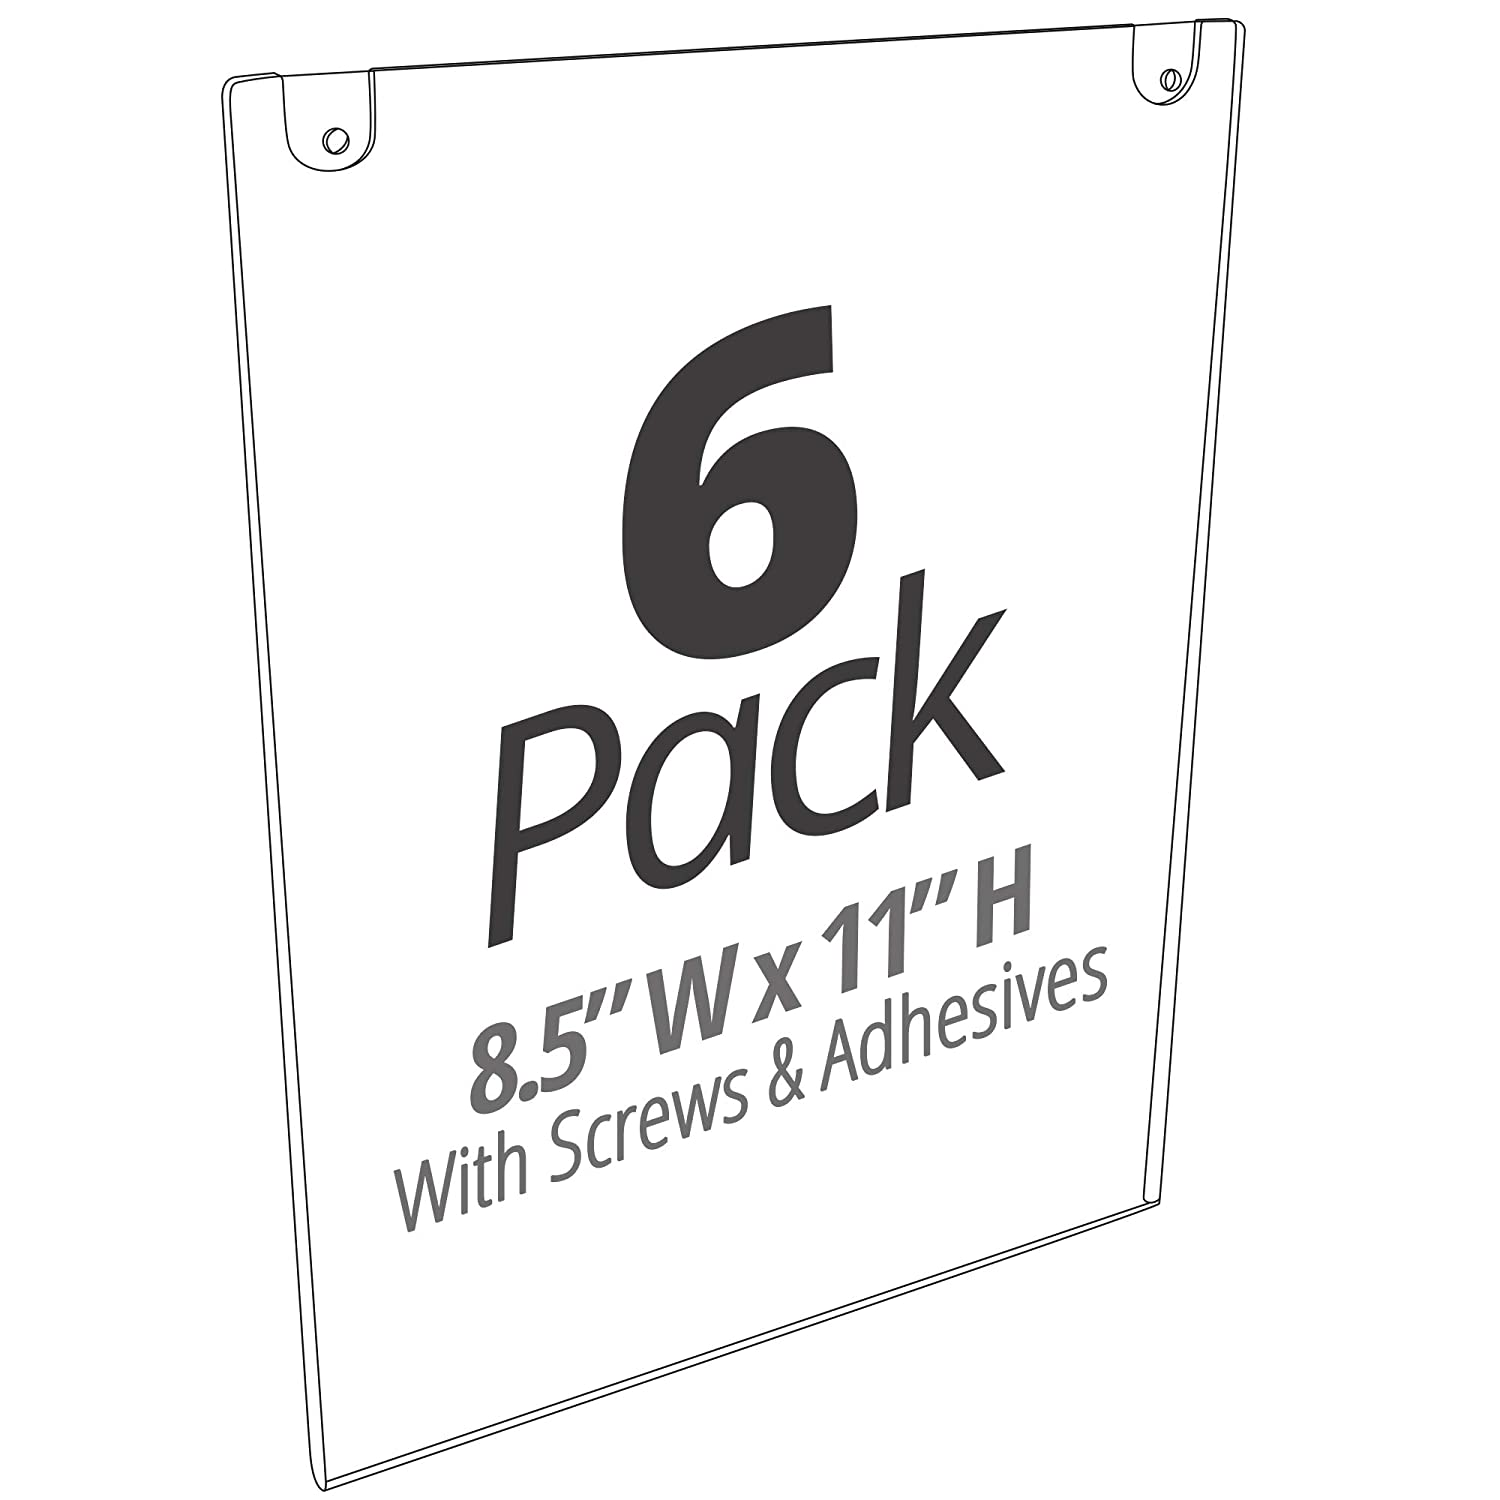 Mammoth Acrylic Wall Sign Holder 8.5 x 11 Inches, Thick & Durable Design, Stick On or Screw On, Screws and Double Sided 3M Tape Inclusive (Portrait 6 Pack)